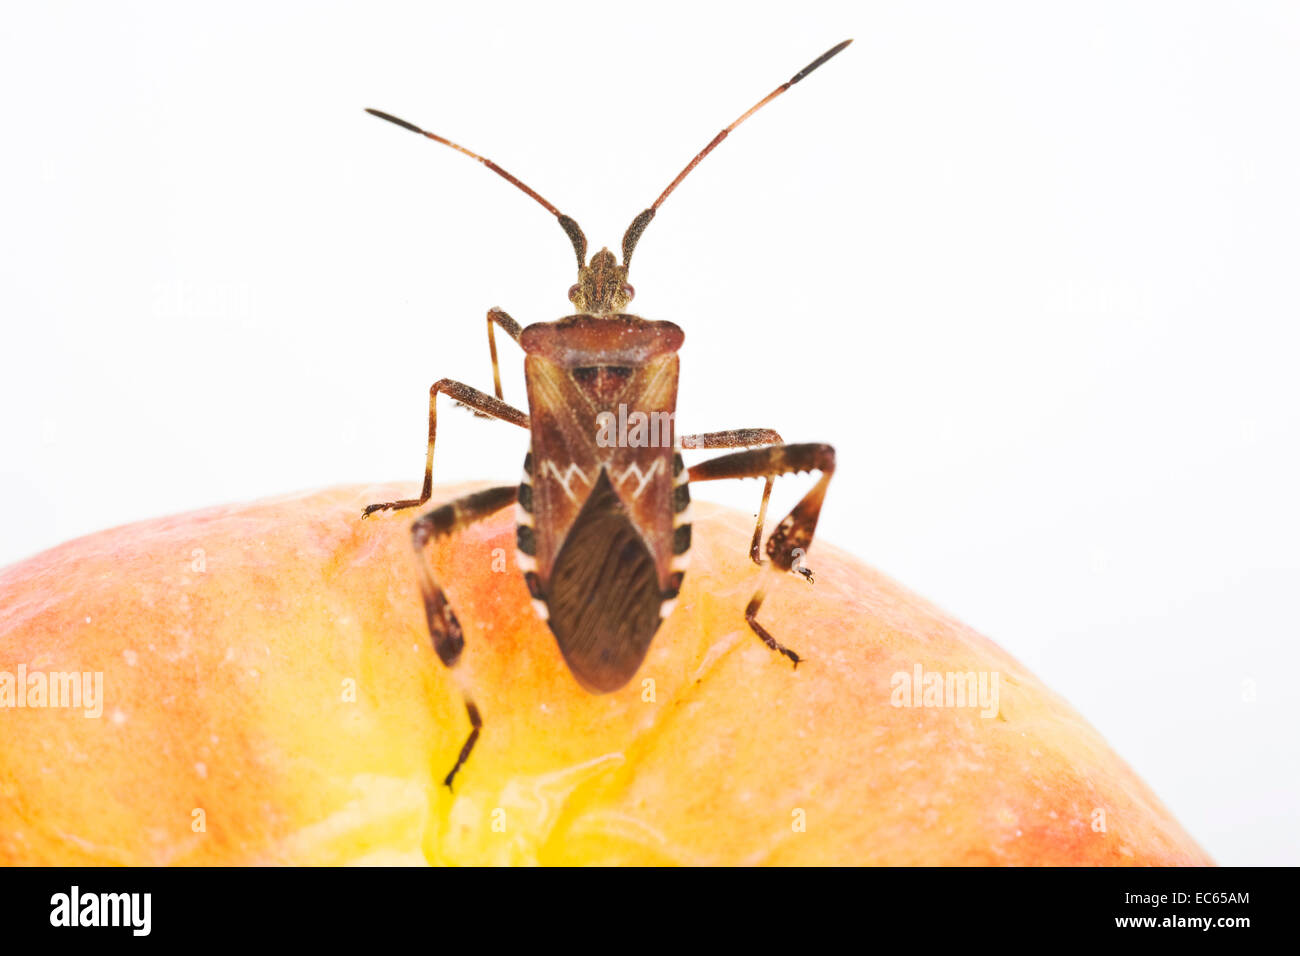 Western Conifer Seed Bug Leptoglossus occidentalis on a apple - Stock Image